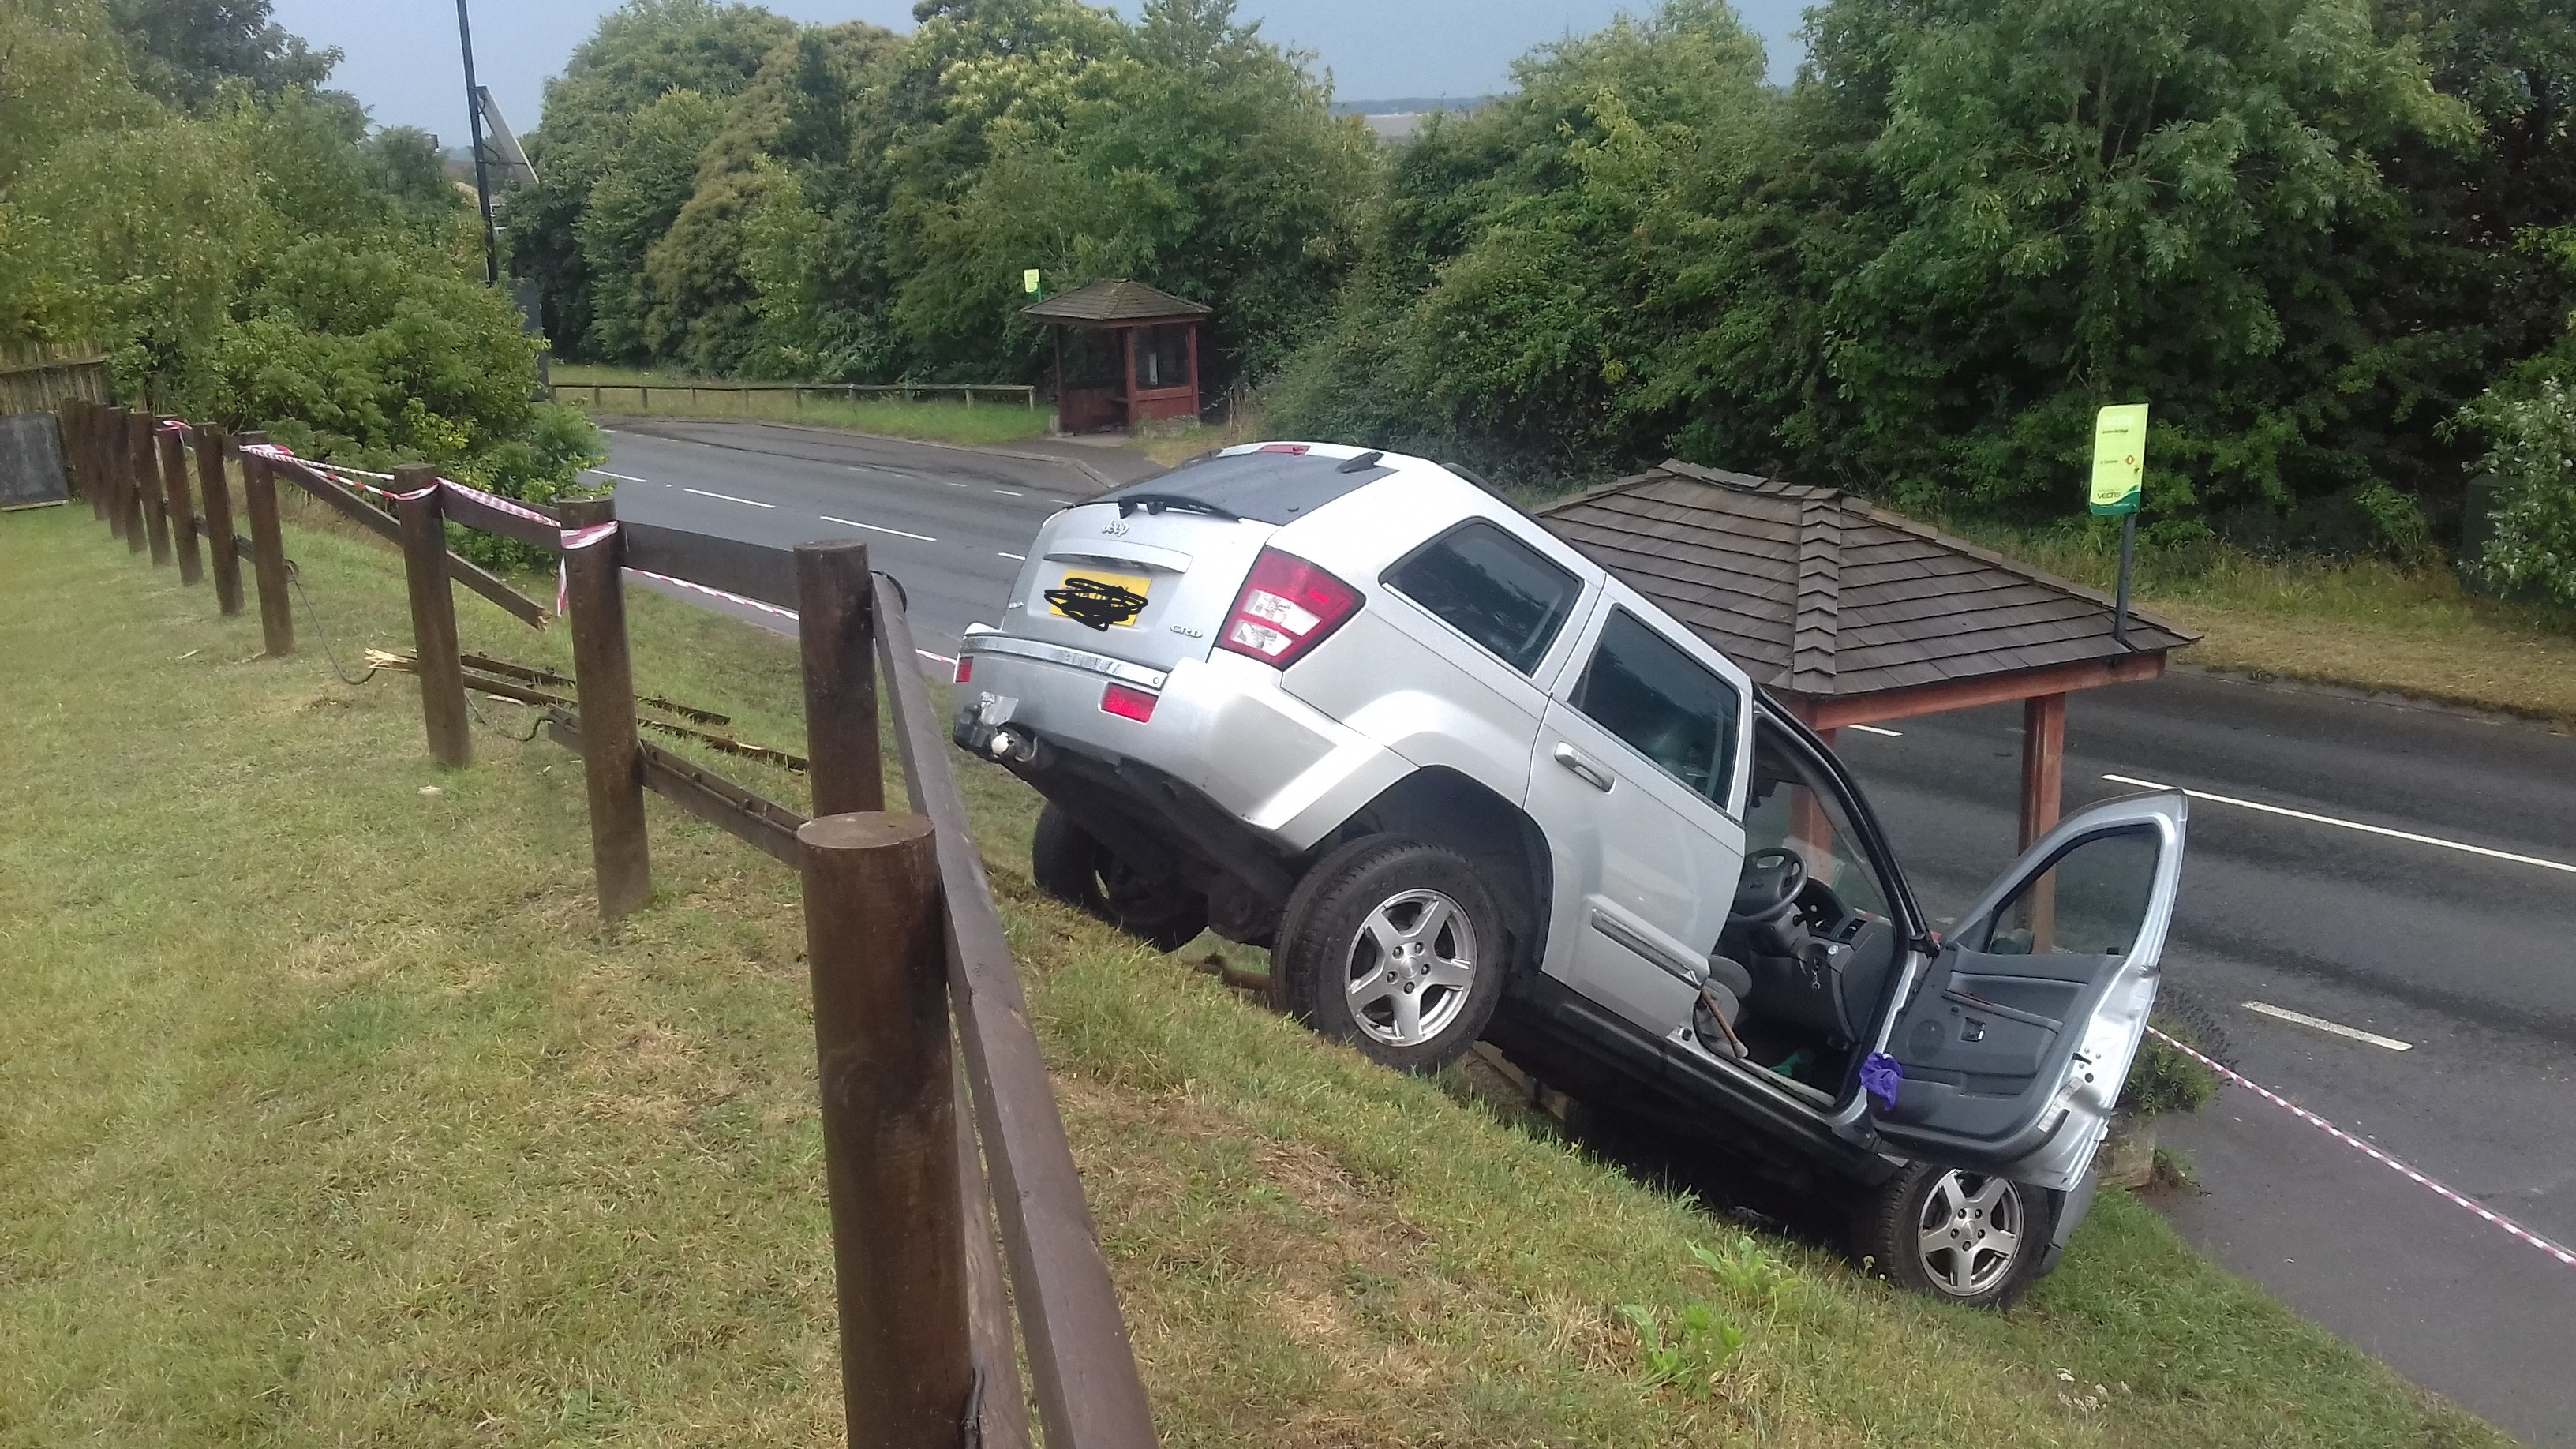 2020 Barns car accident July 14 no number plate.jpg